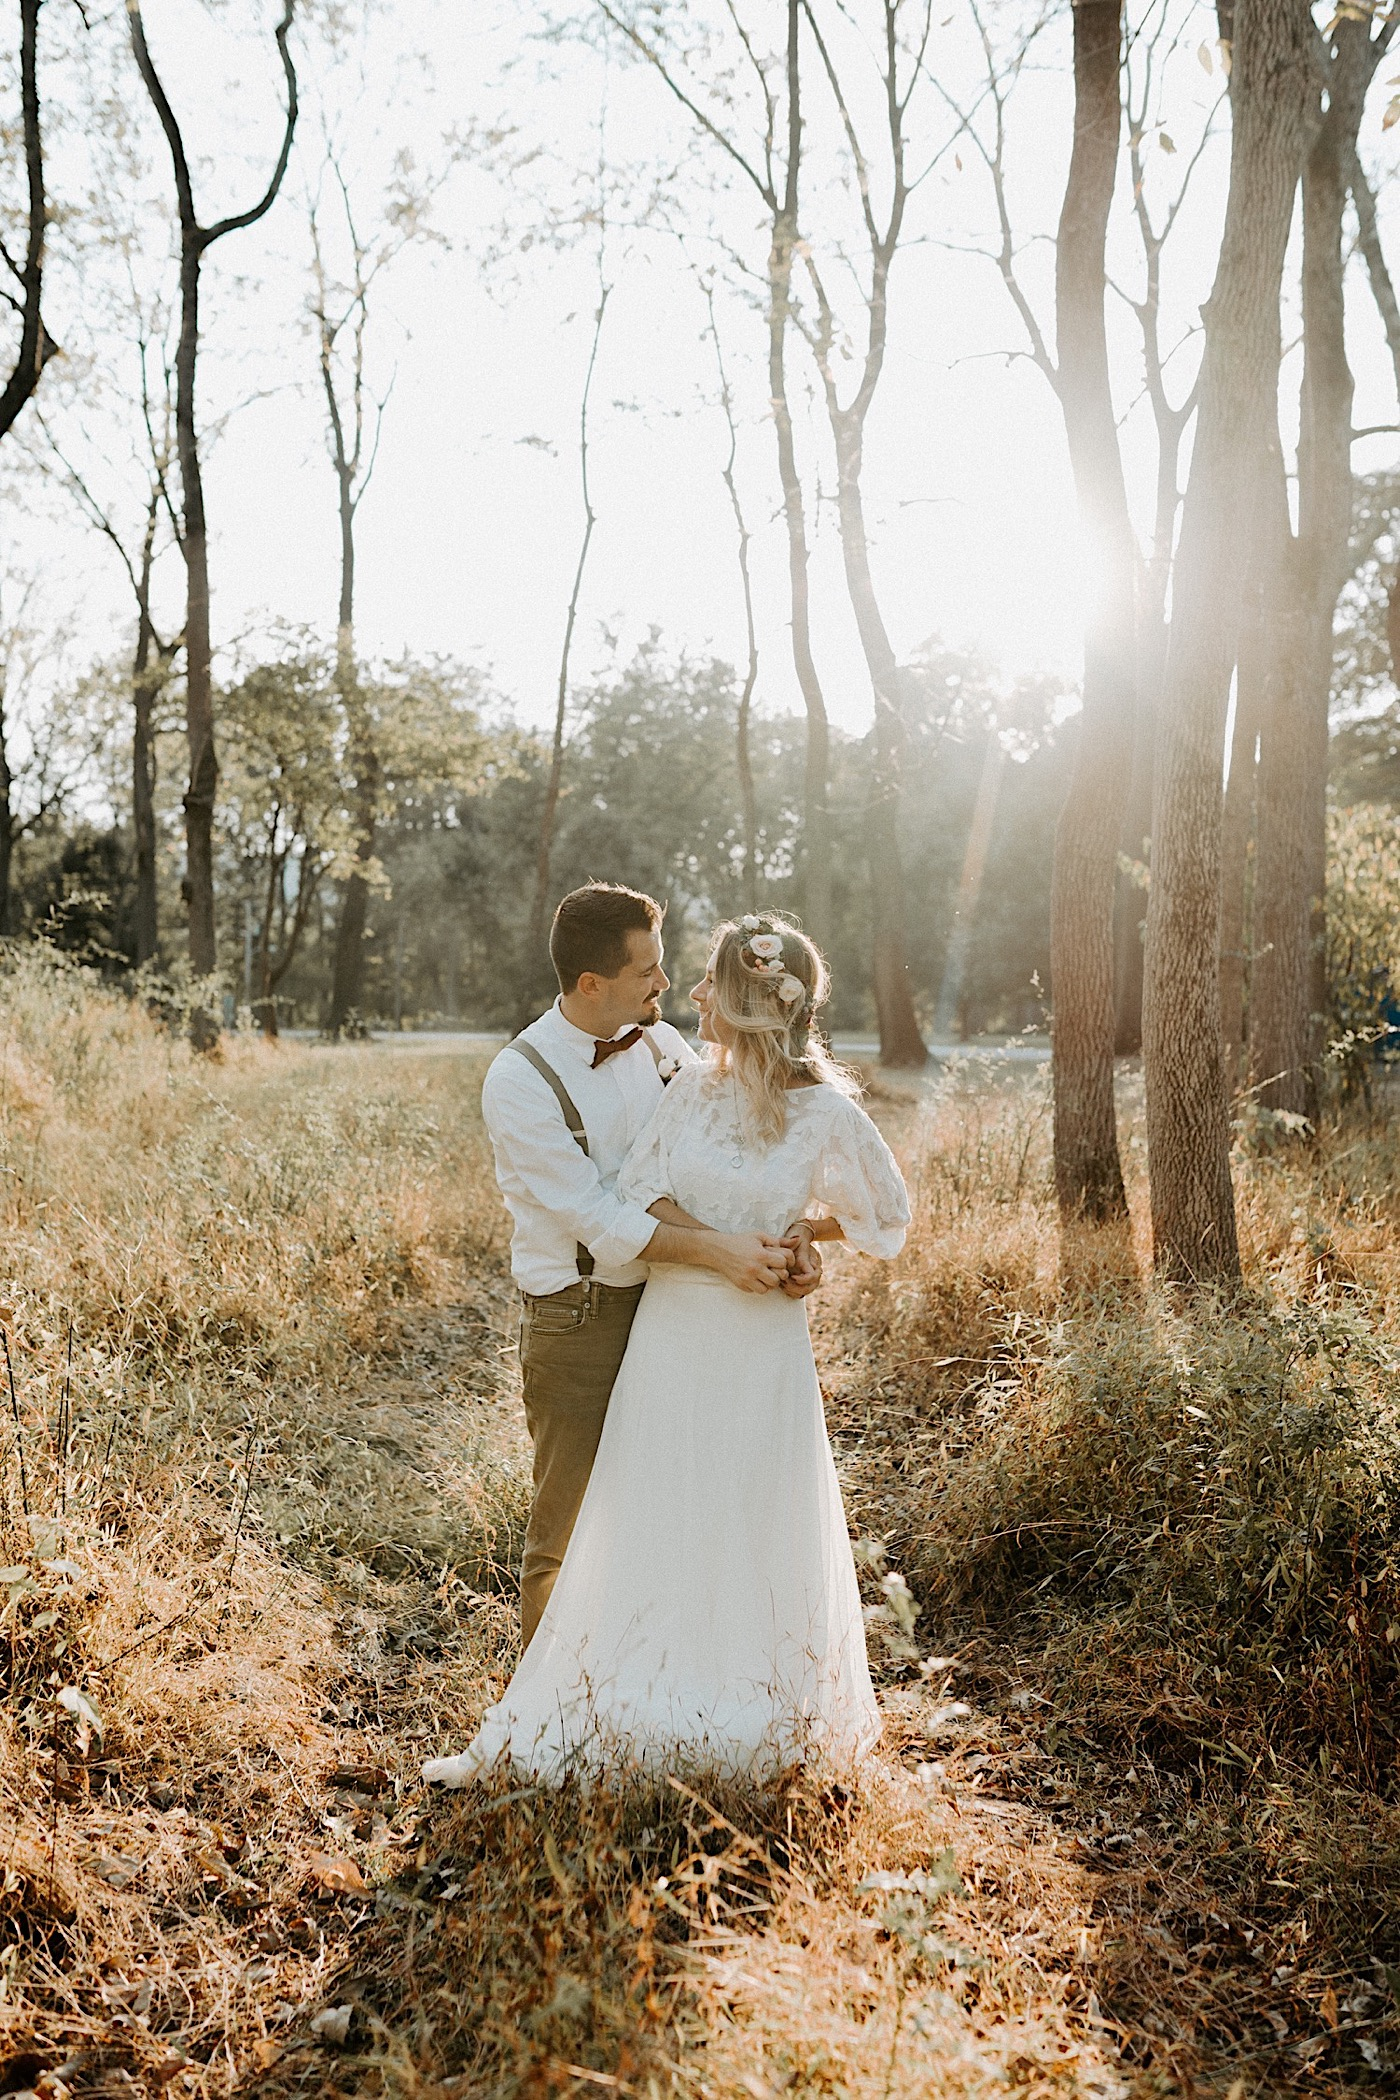 Woolverton Inn Elopement NJ Wedding Photographer Boho Wedding 036